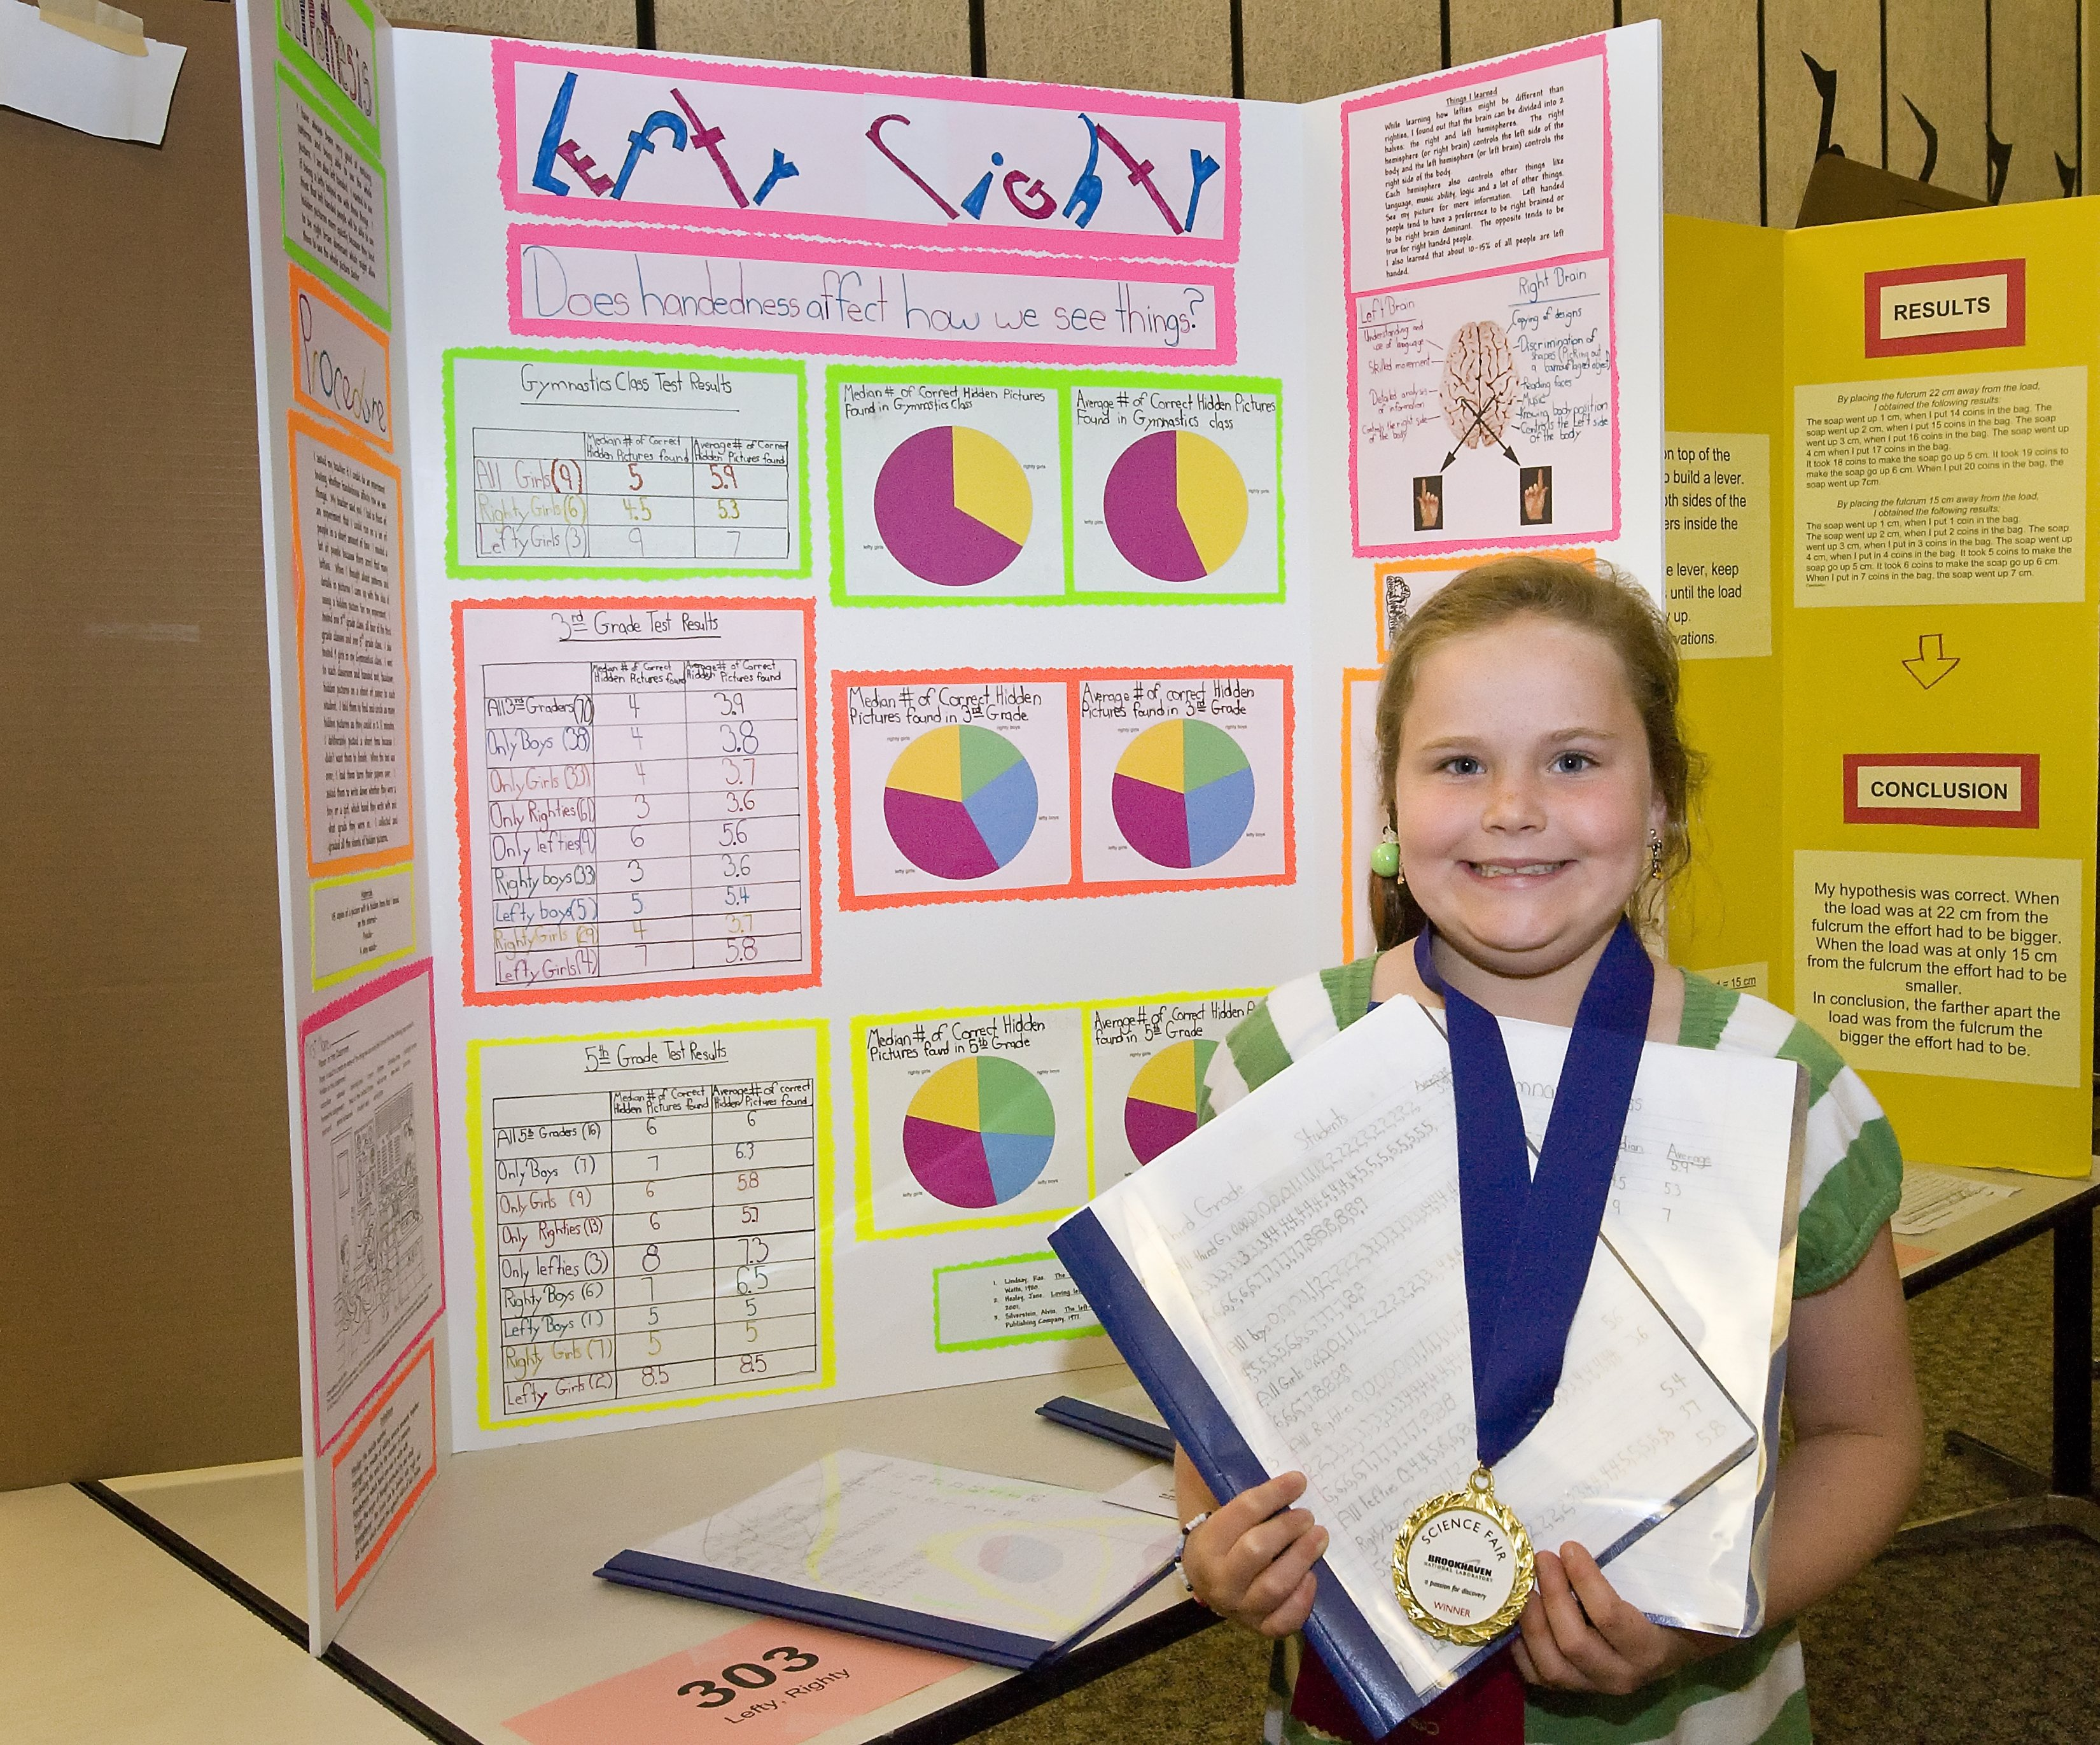 10 Awesome Sports Science Fair Project Ideas from ant control to wind energy winning projects at brookhaven 42